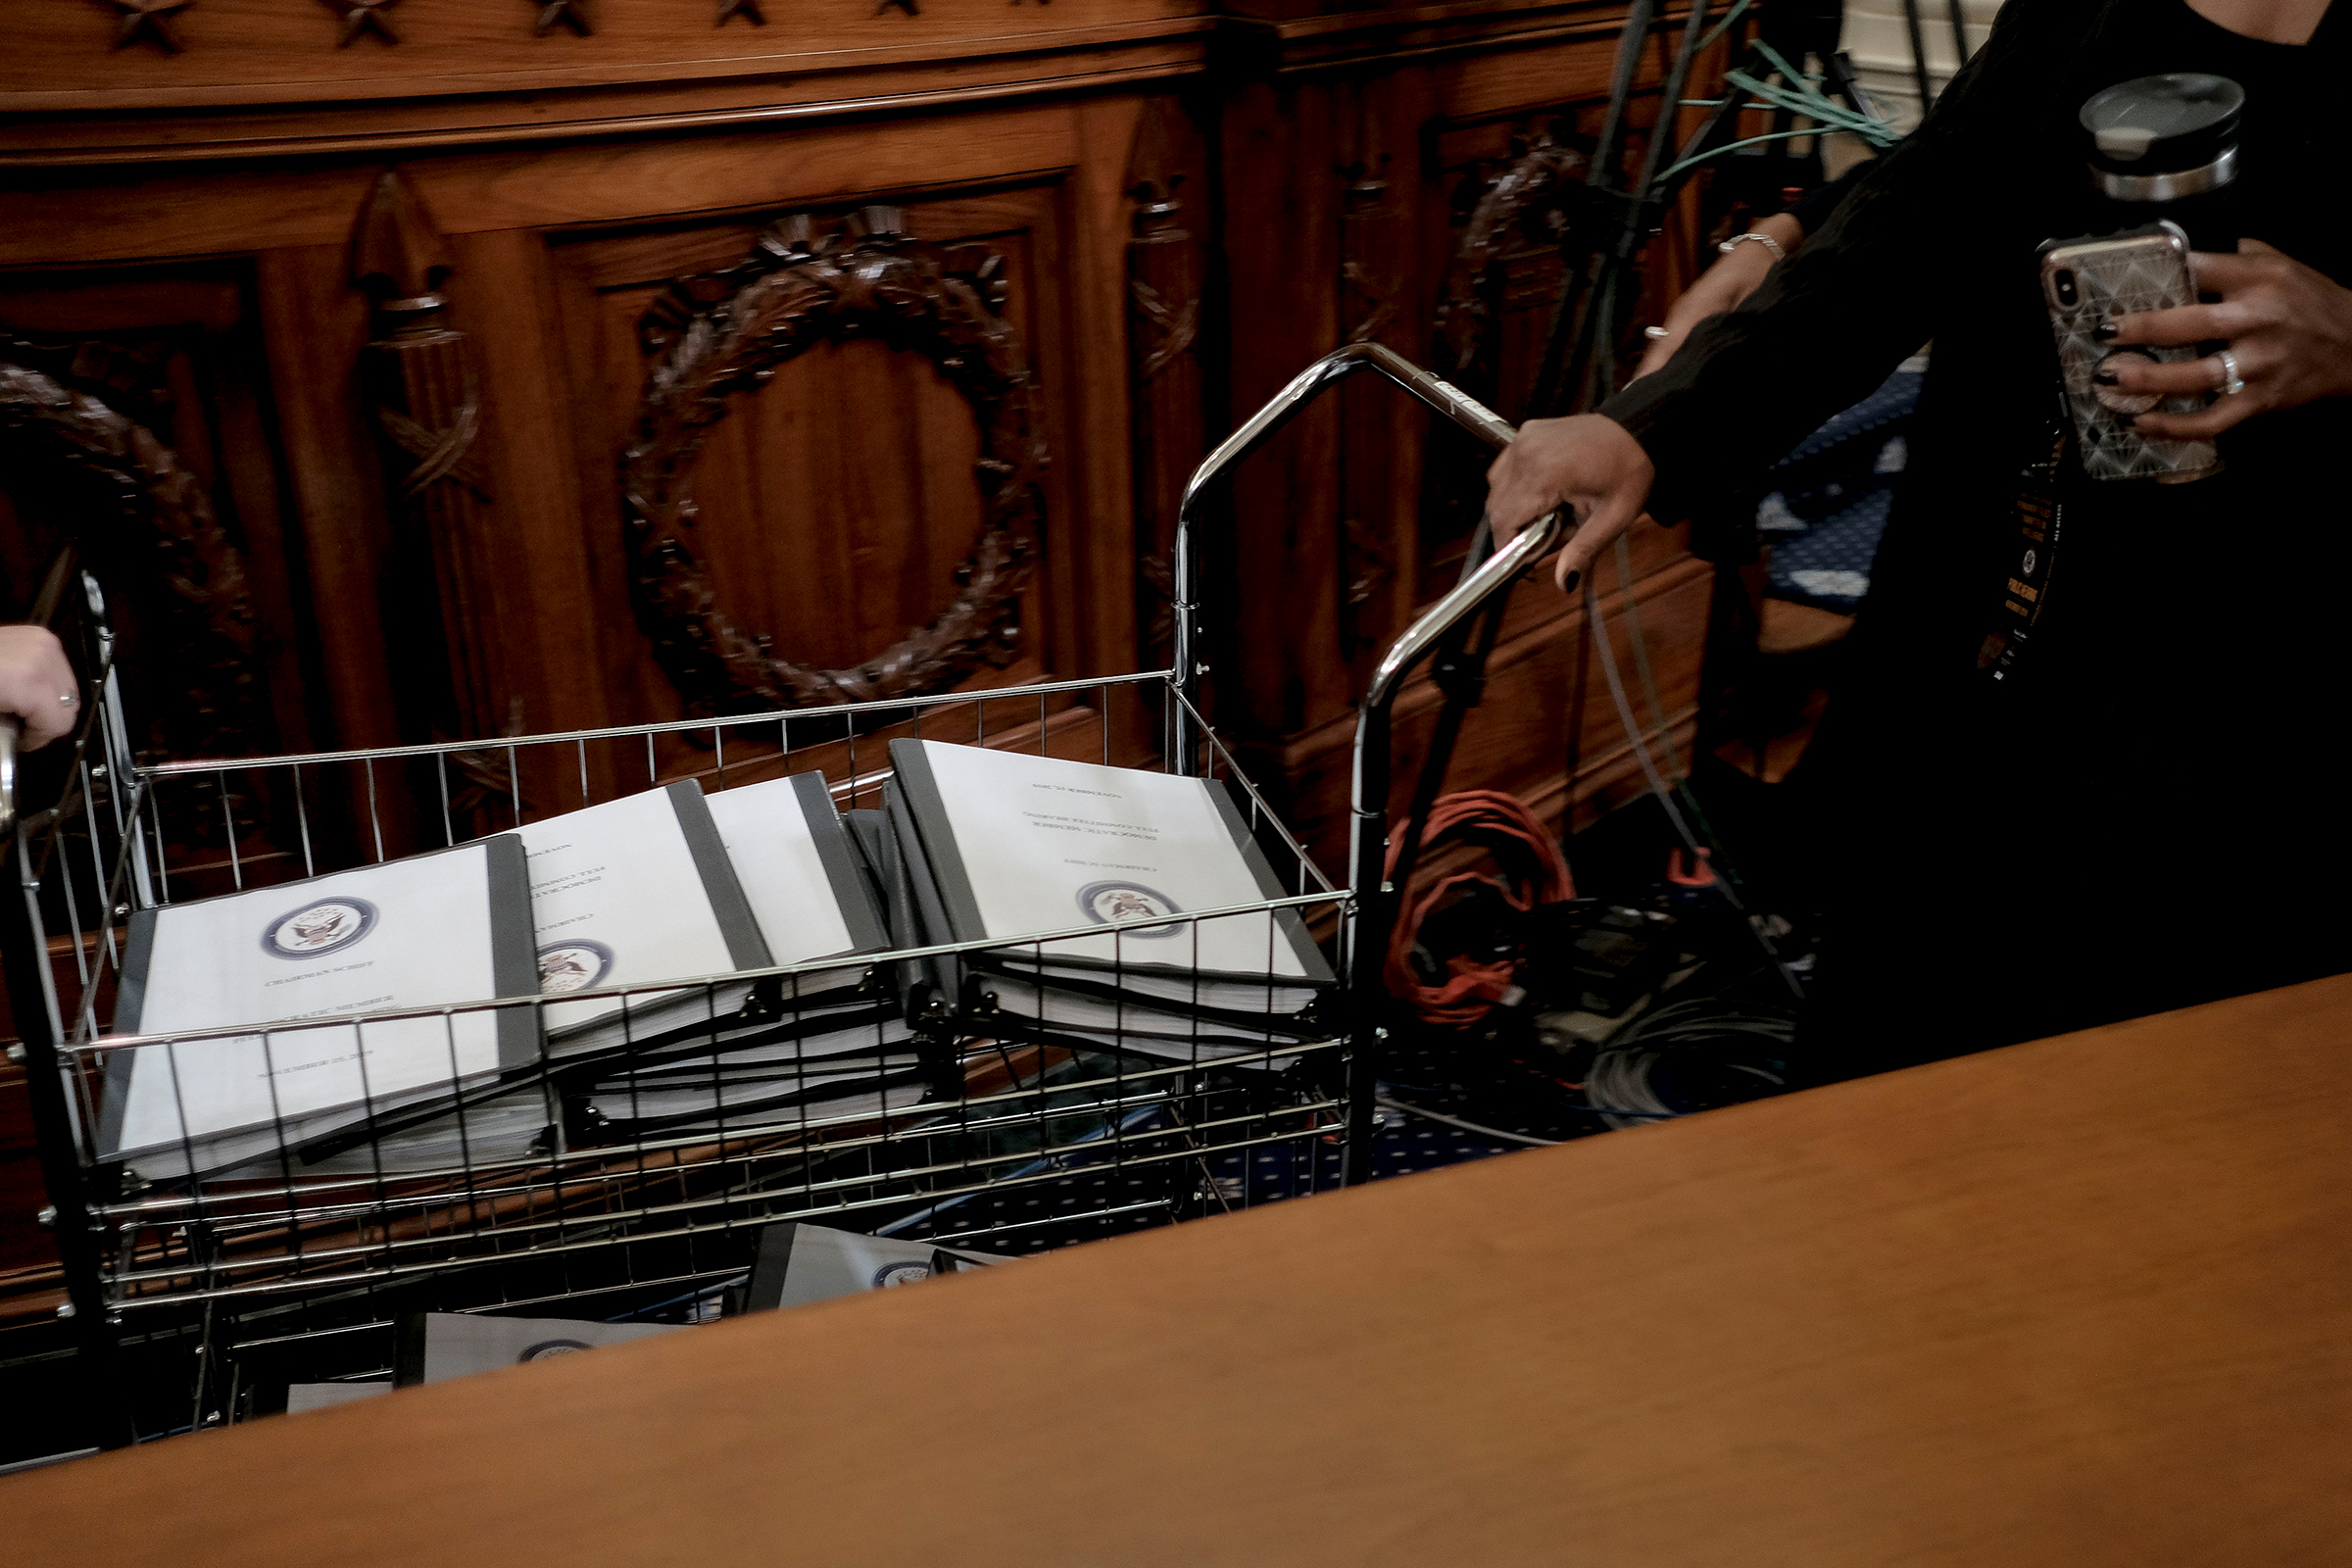 Binders full of notes, testimonies, talking points and more are distributed for Democratic members of Congress at the House Intelligence Committee hearing on the impeachment inquiry, in Washington, D.C., on Nov. 15, 2019.